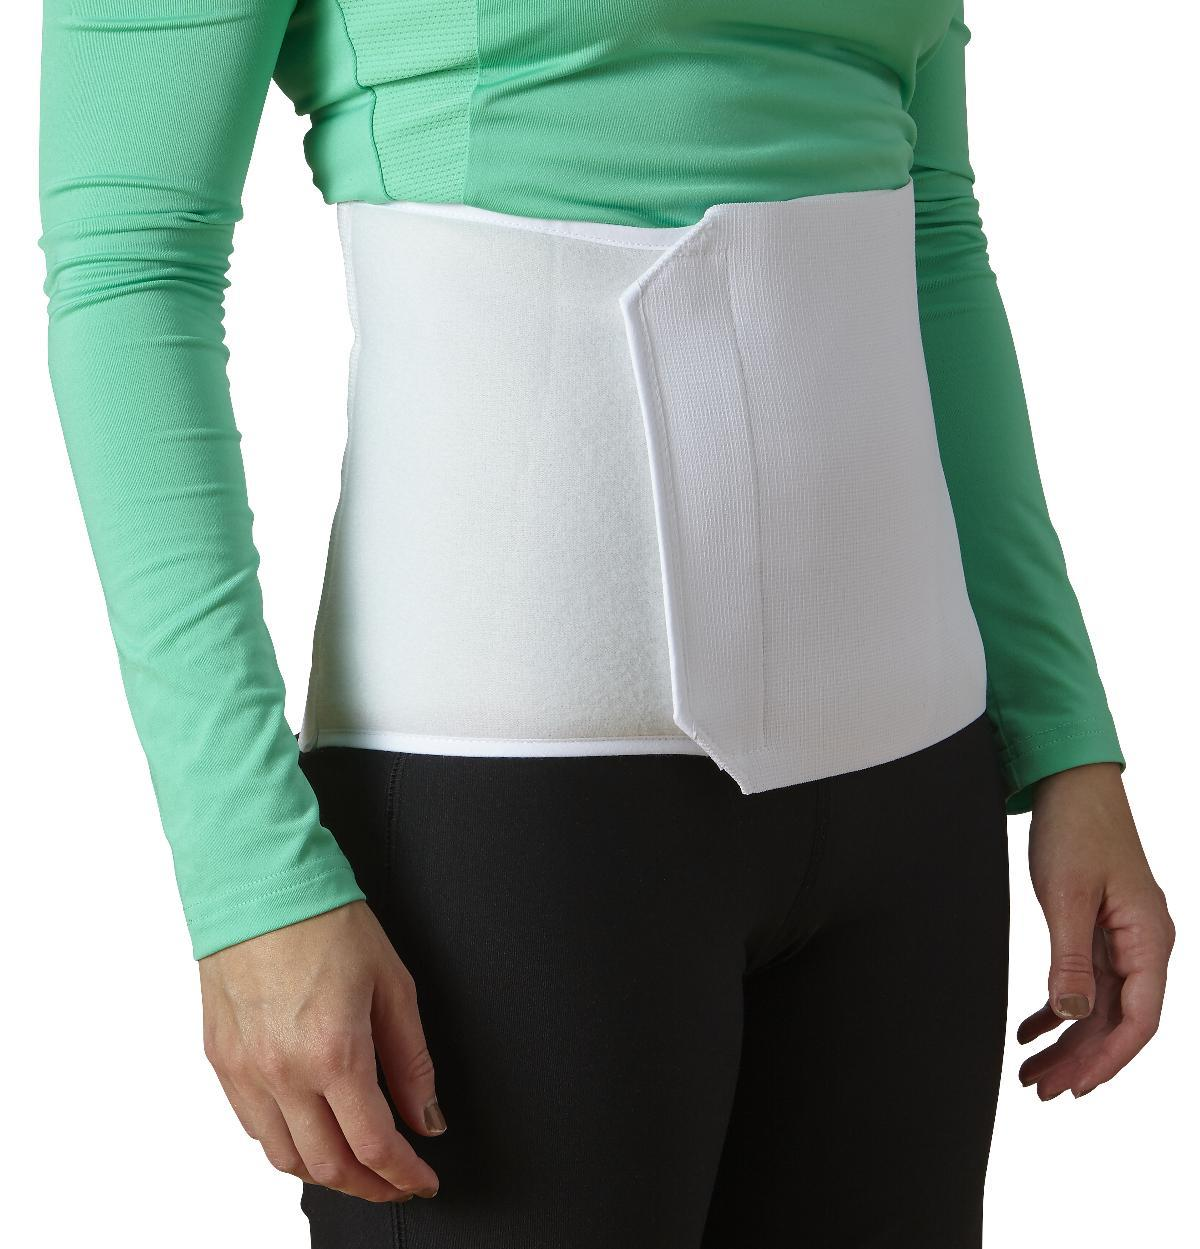 Therapy & Fitness Orthopedic Soft Goods Abdominal Binders & Ribs Belts - Mds169028 - Binder Abdominal Unisize 46-62 12 MDS169028